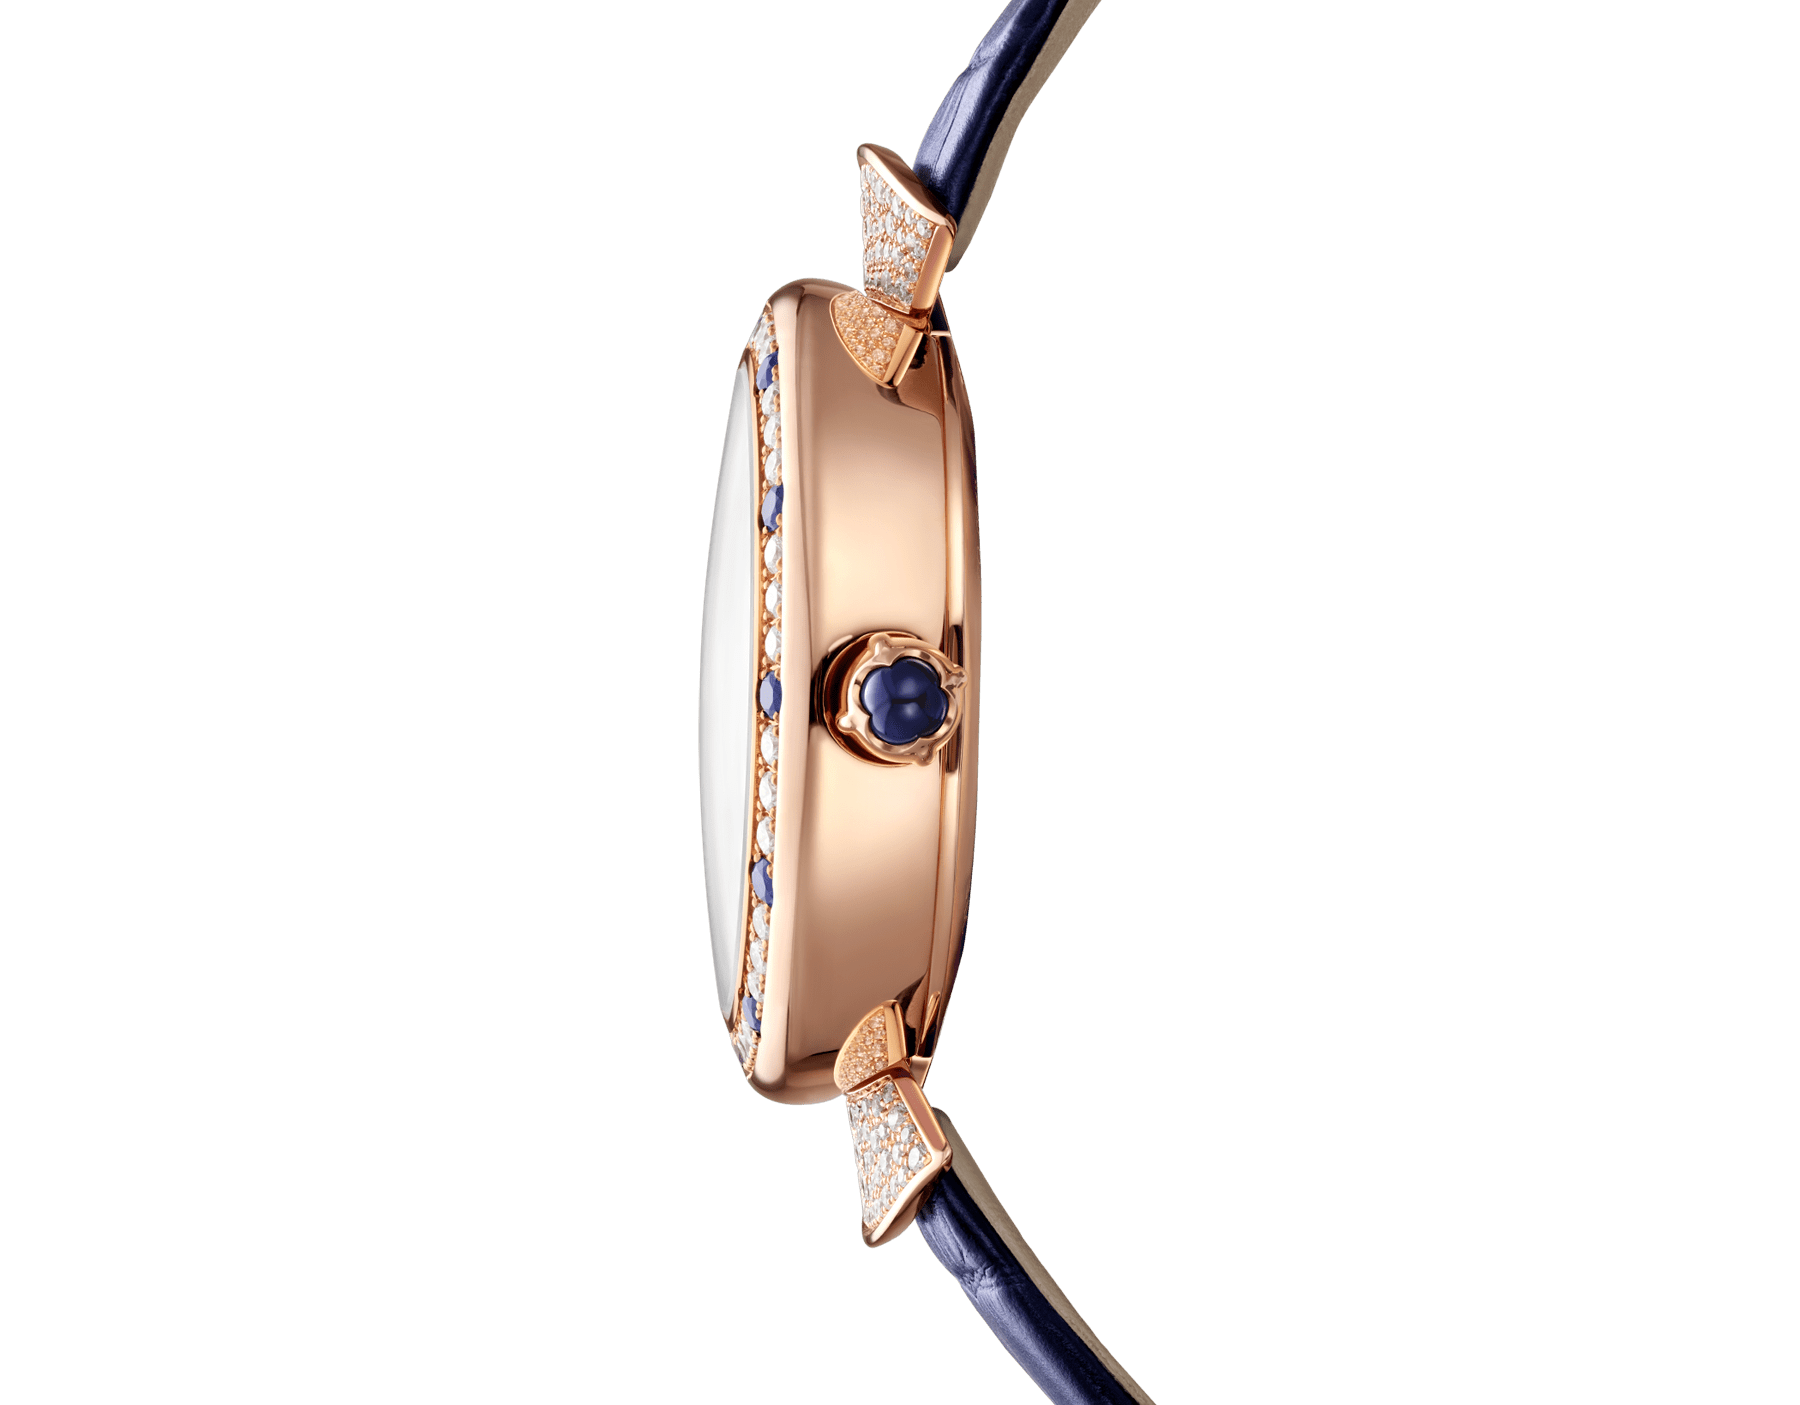 DIVAS' DREAM watch with mechanical manufacture movement, automatic winding, 18 kt rose gold case set with round brilliant-cut diamonds and sapphires, aventurine rotating discs with diamonds and printed constellations and dark blue alligator bracelet 102843 image 3